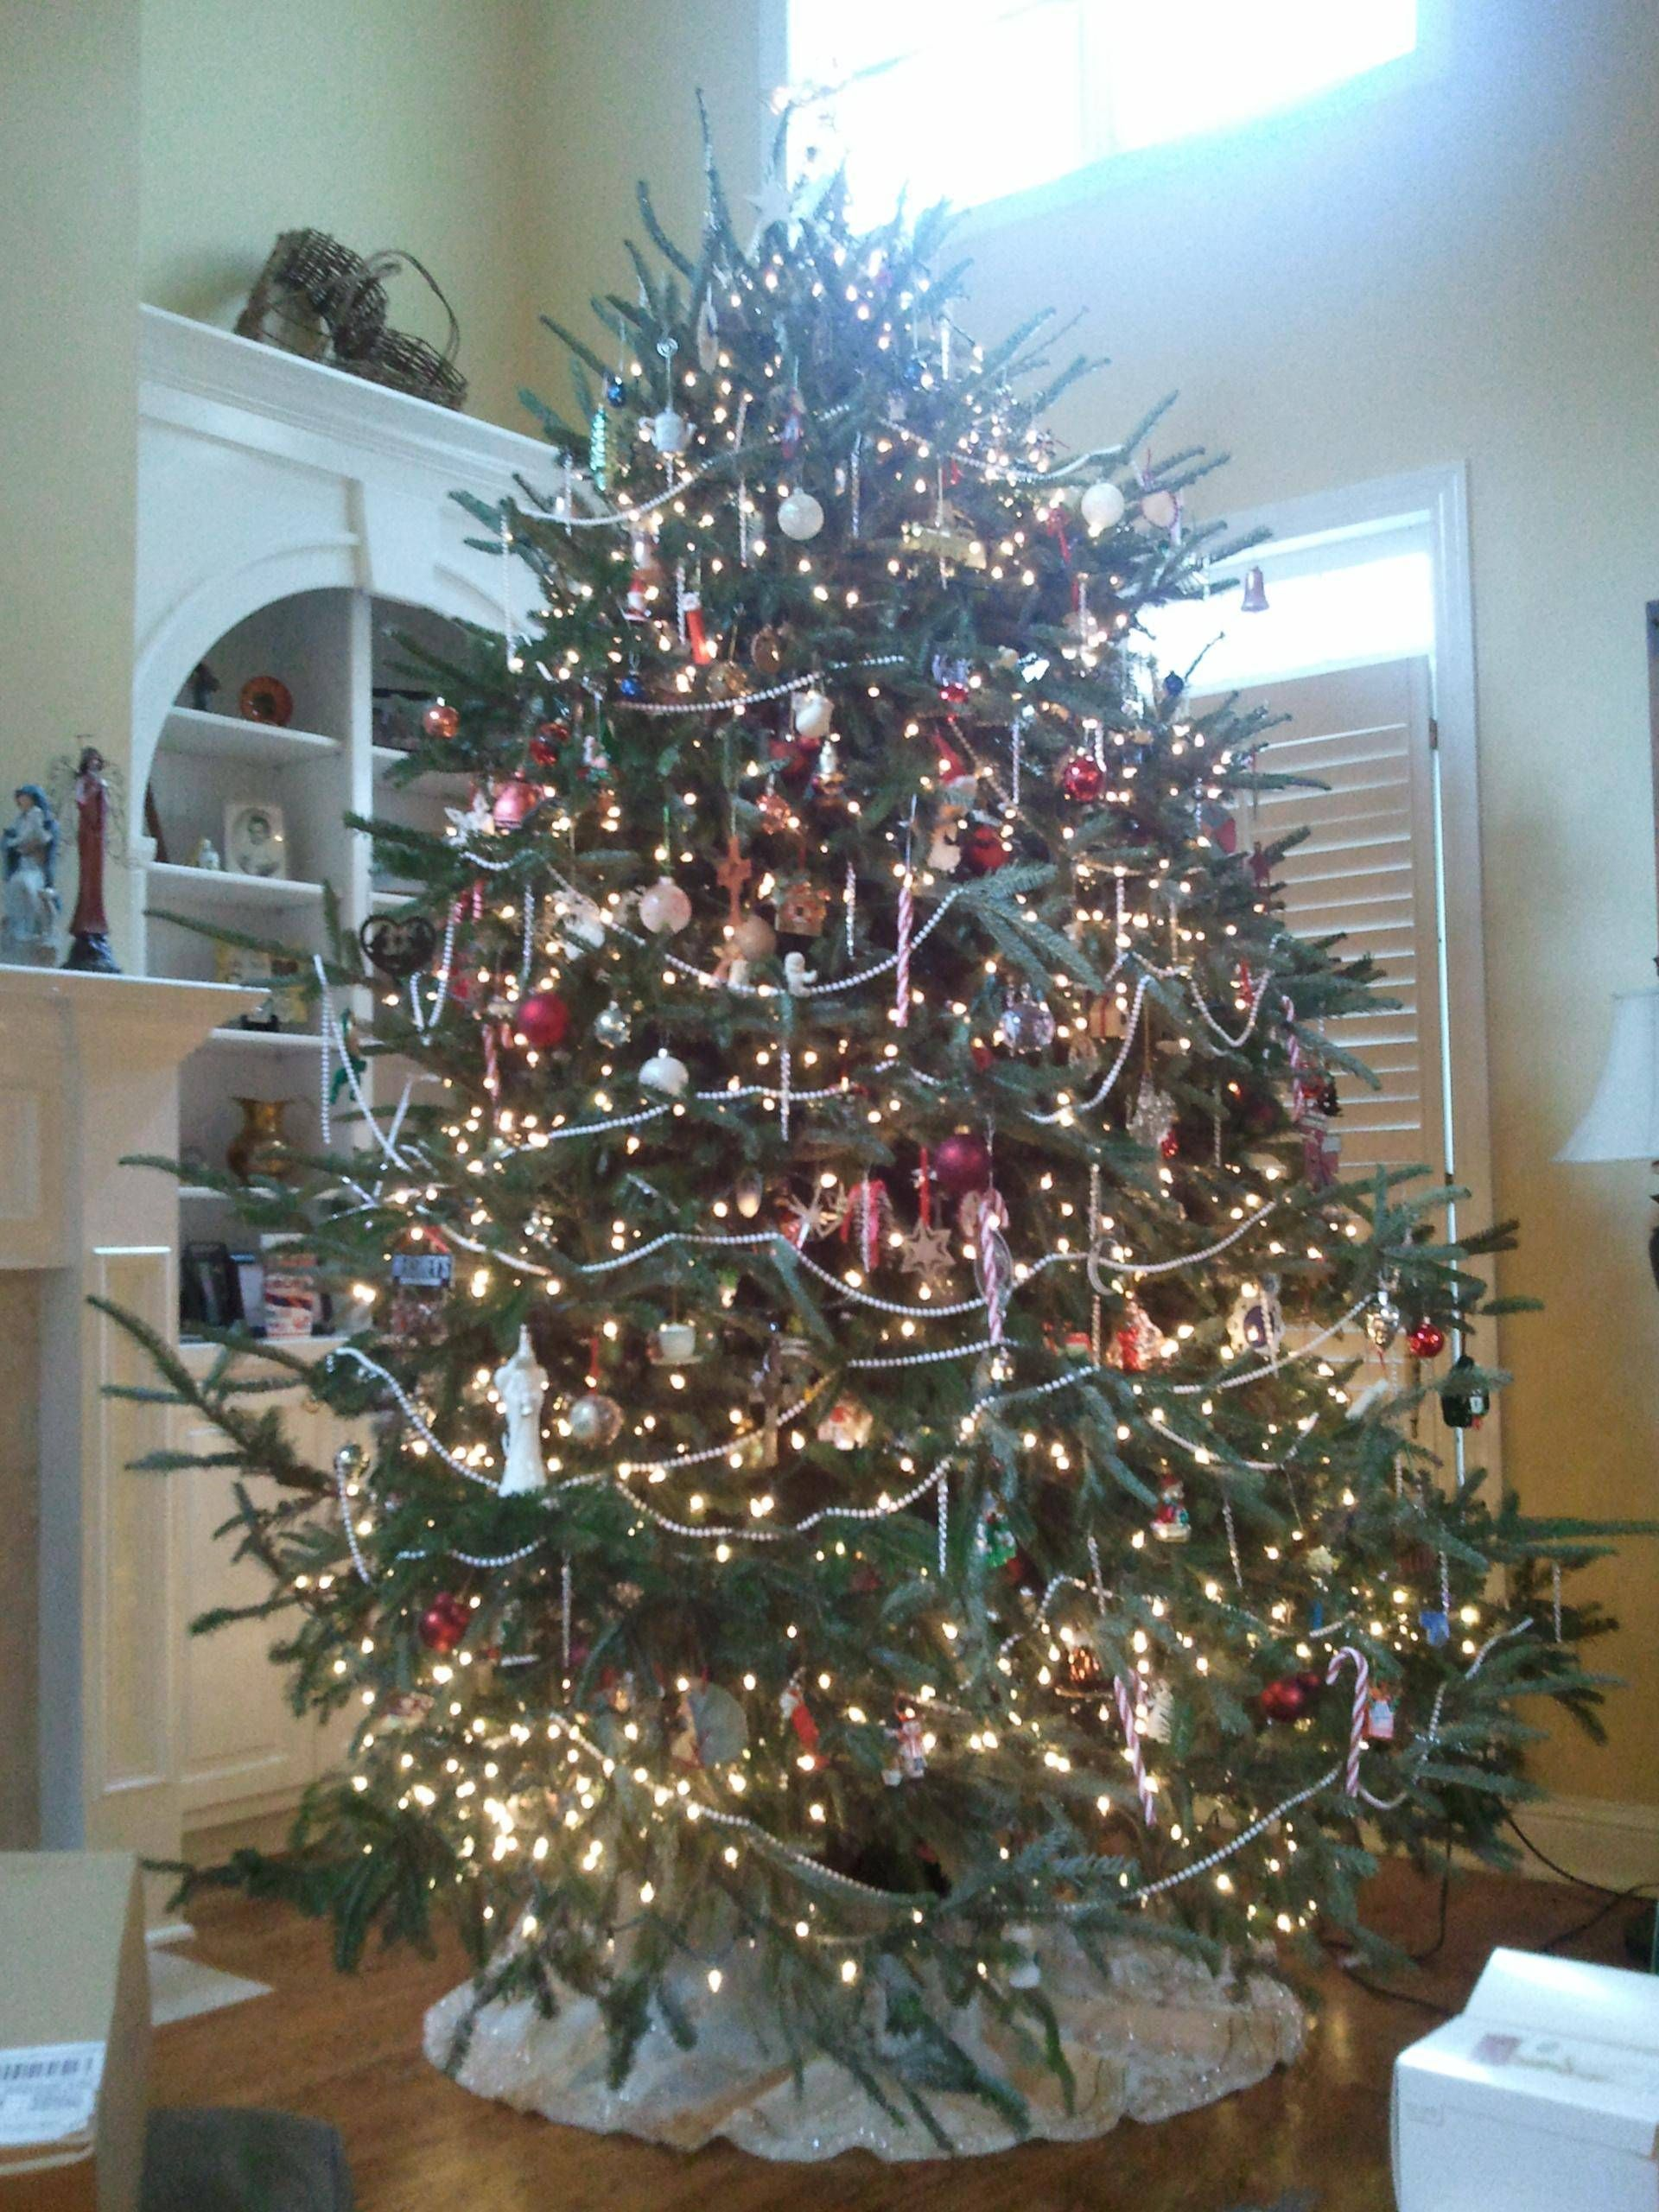 Nothing like a real old fashioned Christmas tree Hmm